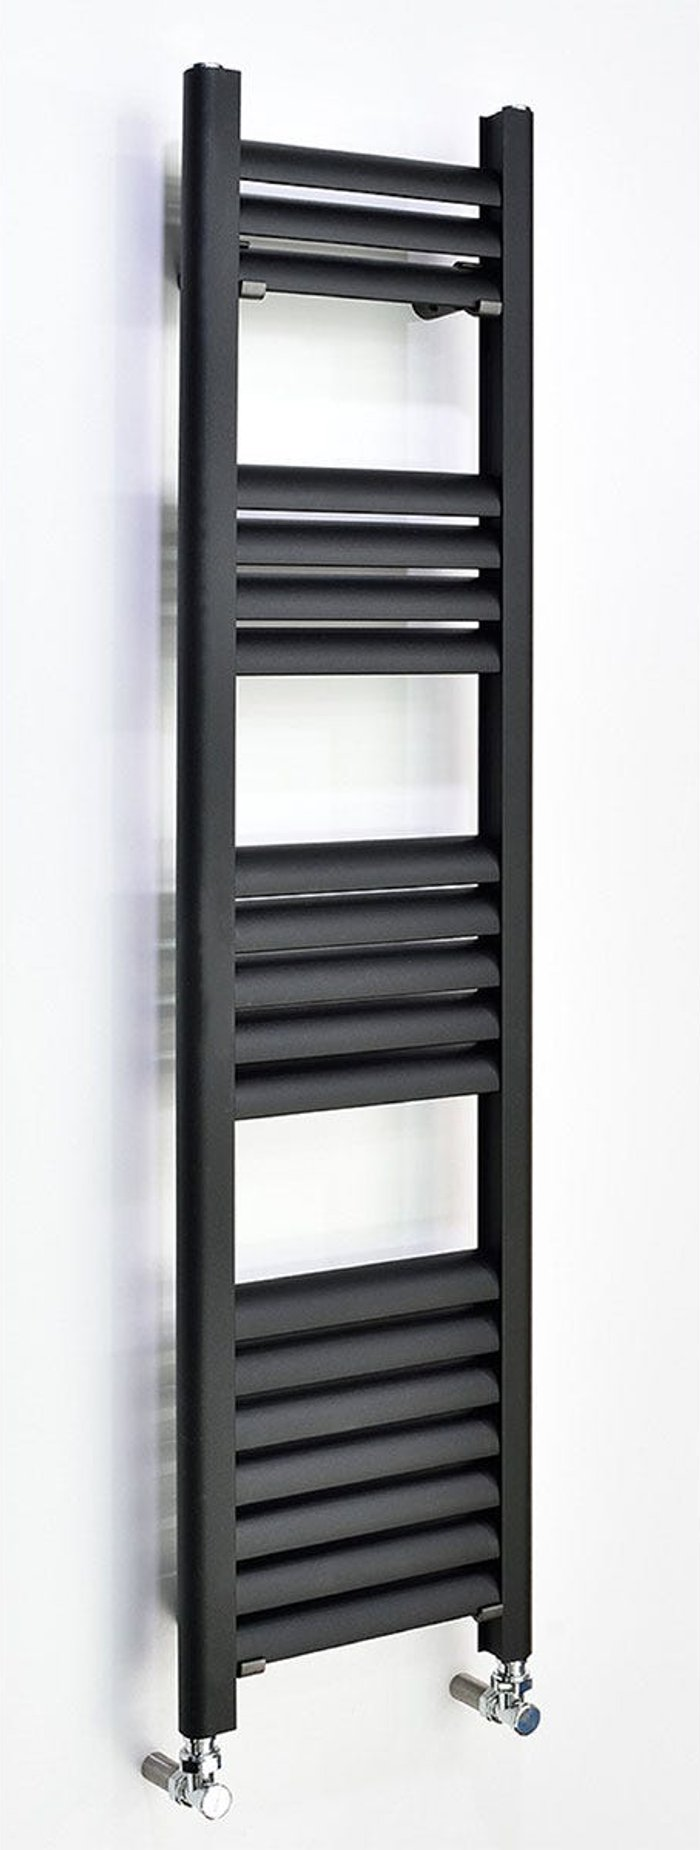 Towelrads Towelrads Accuro Korle Champagne 1200mm x 500mm Aluminium T/Warmer - Anthracite